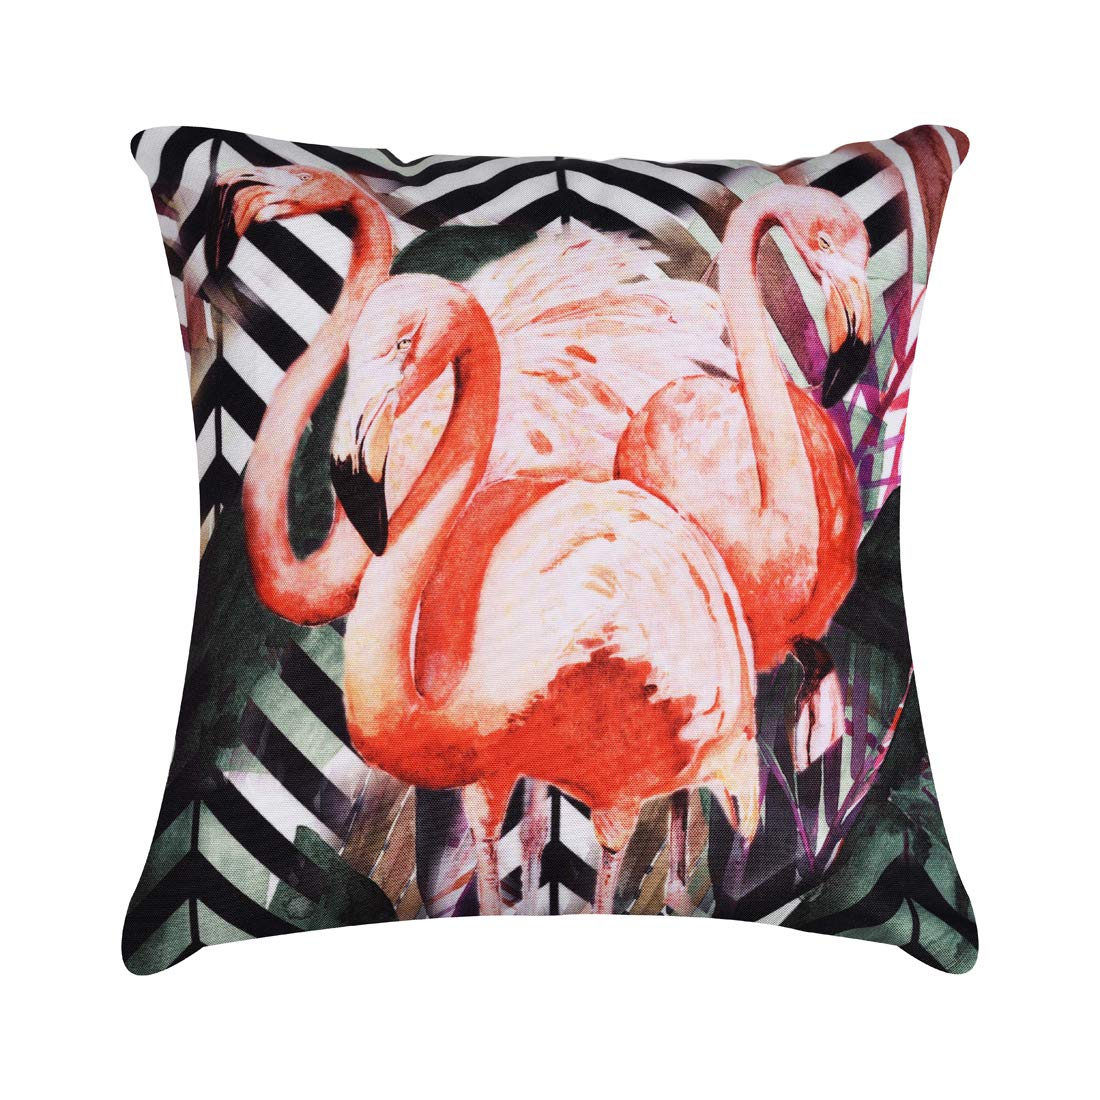 "CDM product Decozen Decorative Throw Pillow with Insert 18""x18"" inches in 1 Set Flamingos Print for Couch Sofa Bed Living Room Bedroom Farmhouse Patio big image"